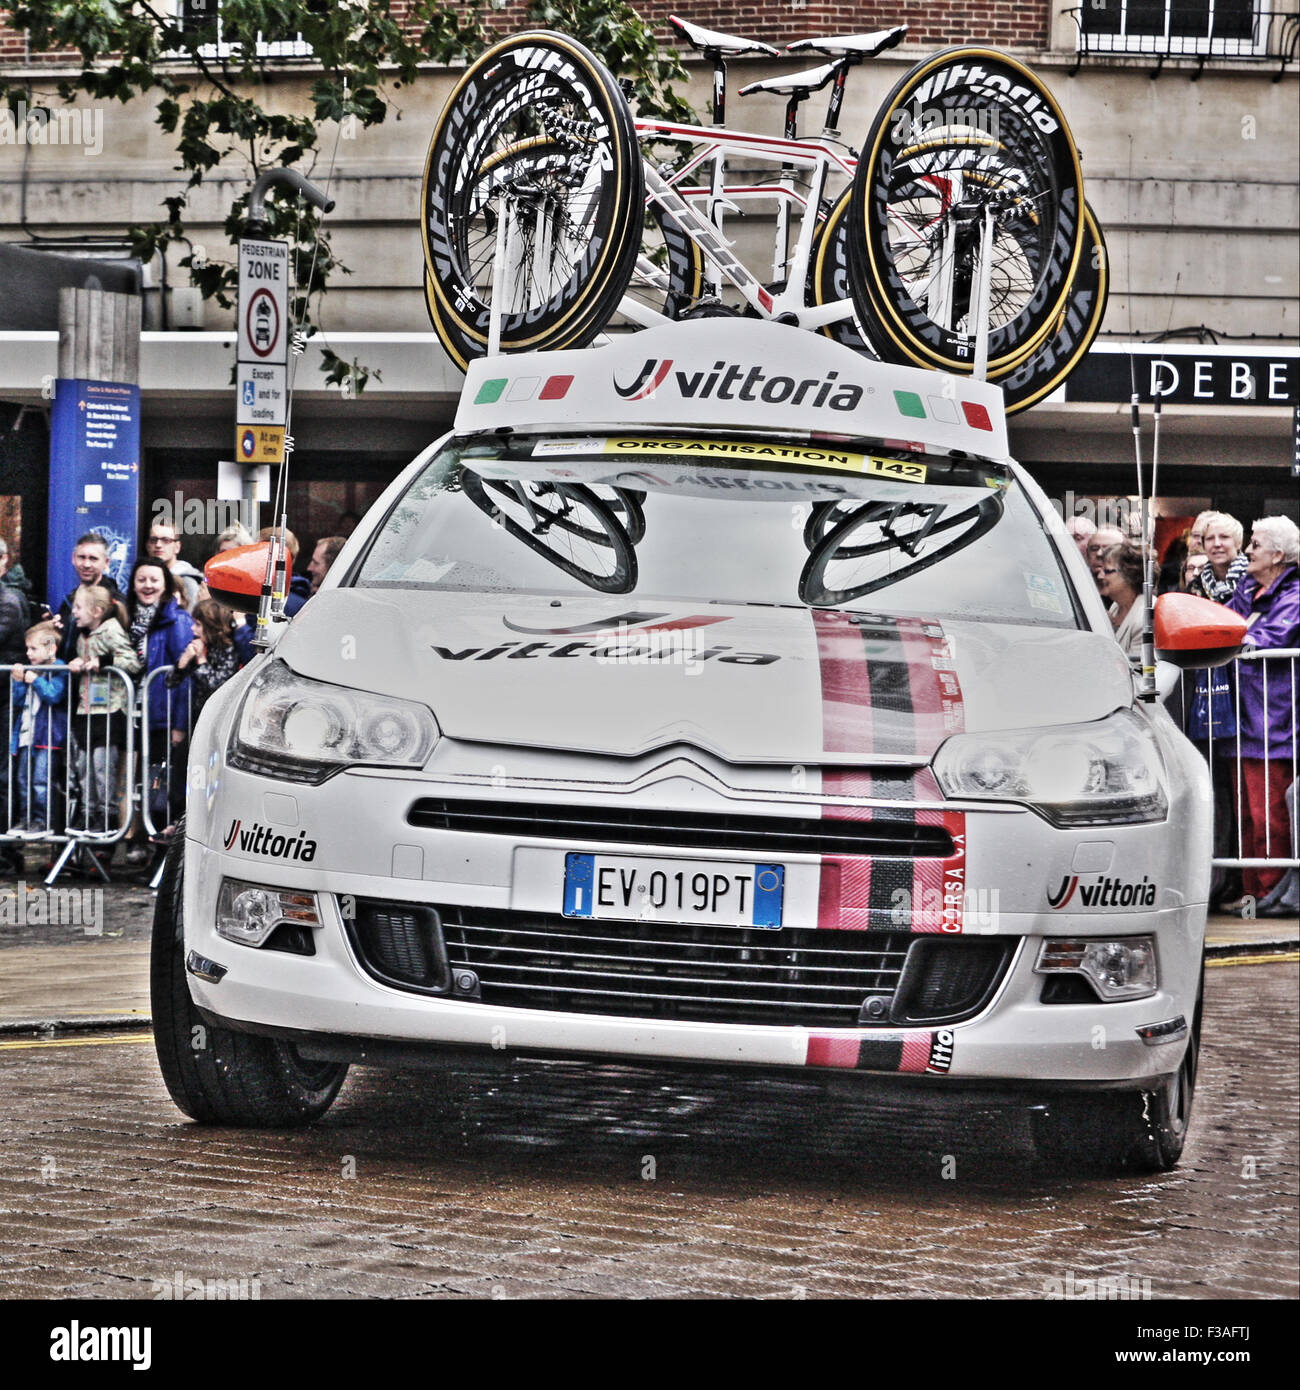 Team car driving through Norwich on the Tour of Britian - Stock Image